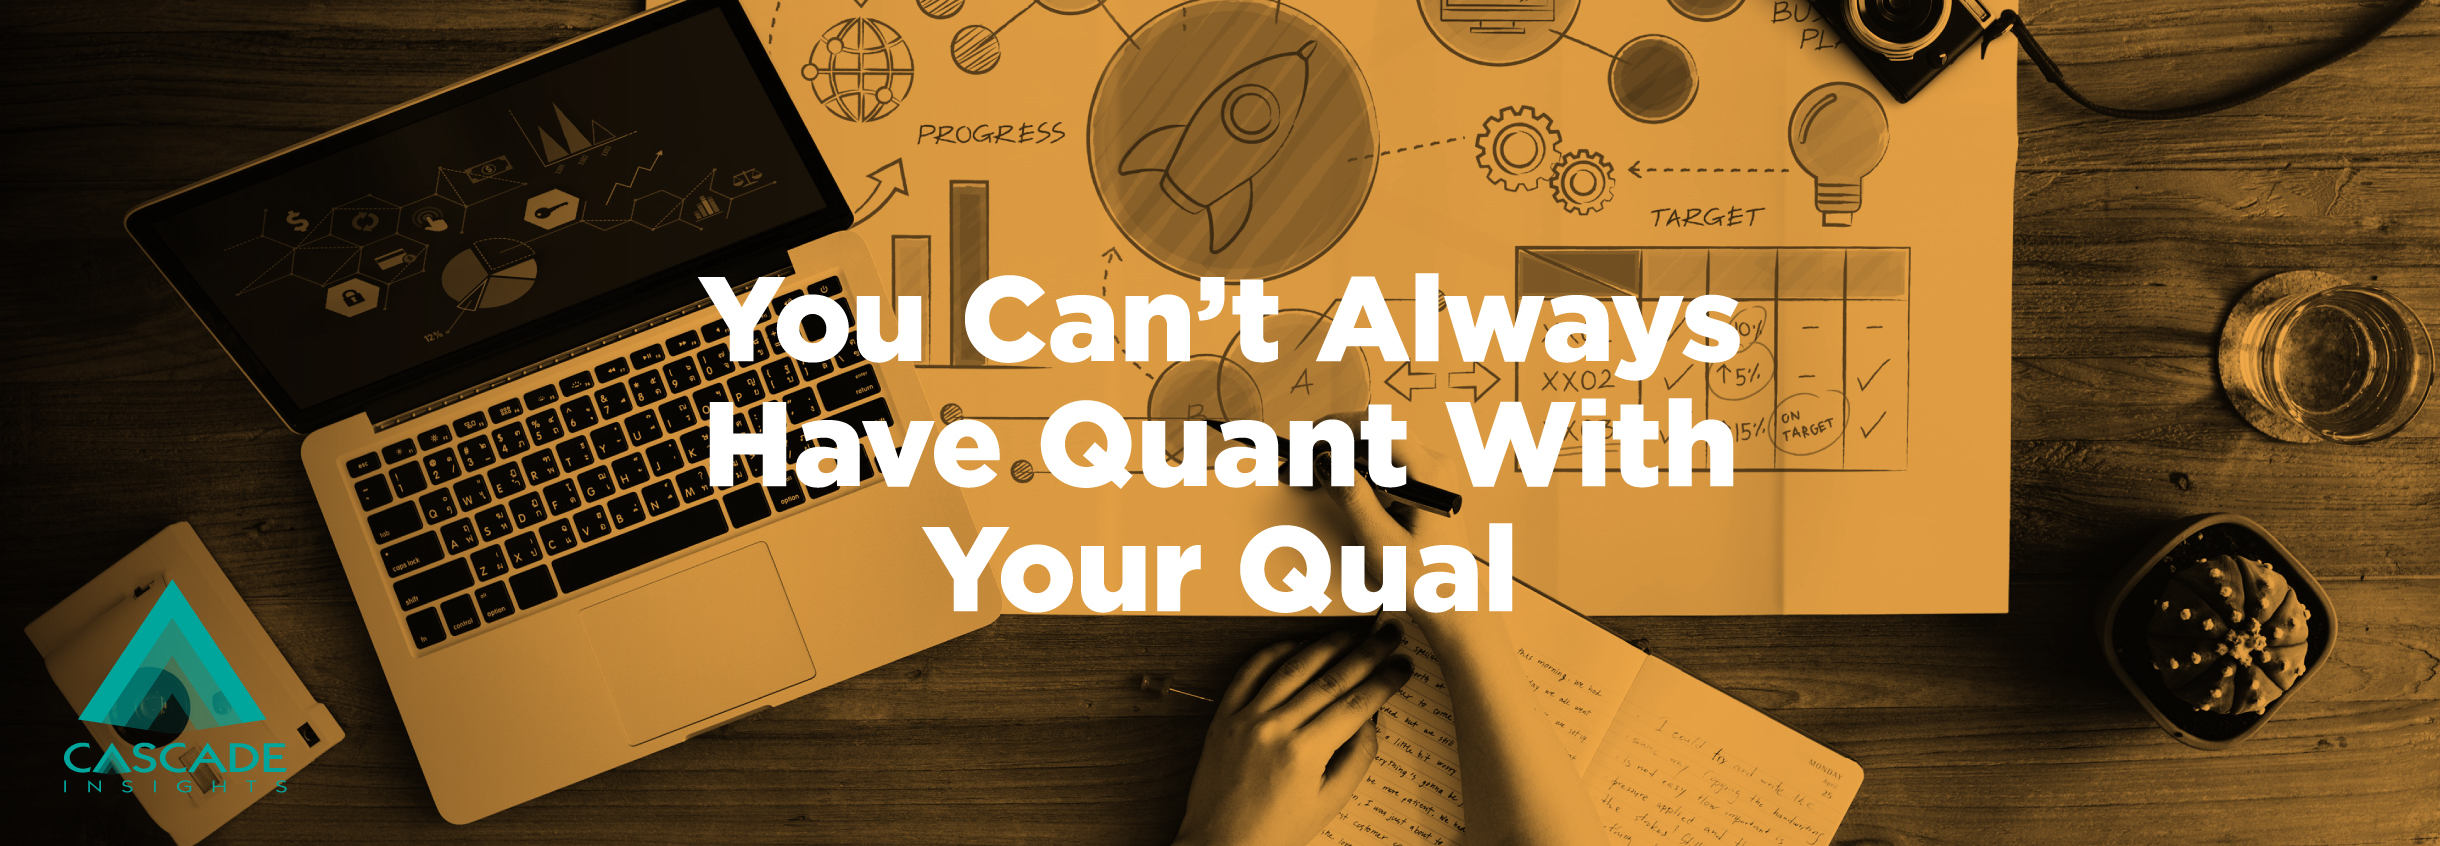 You Can't Always Have Quant With Your Qual